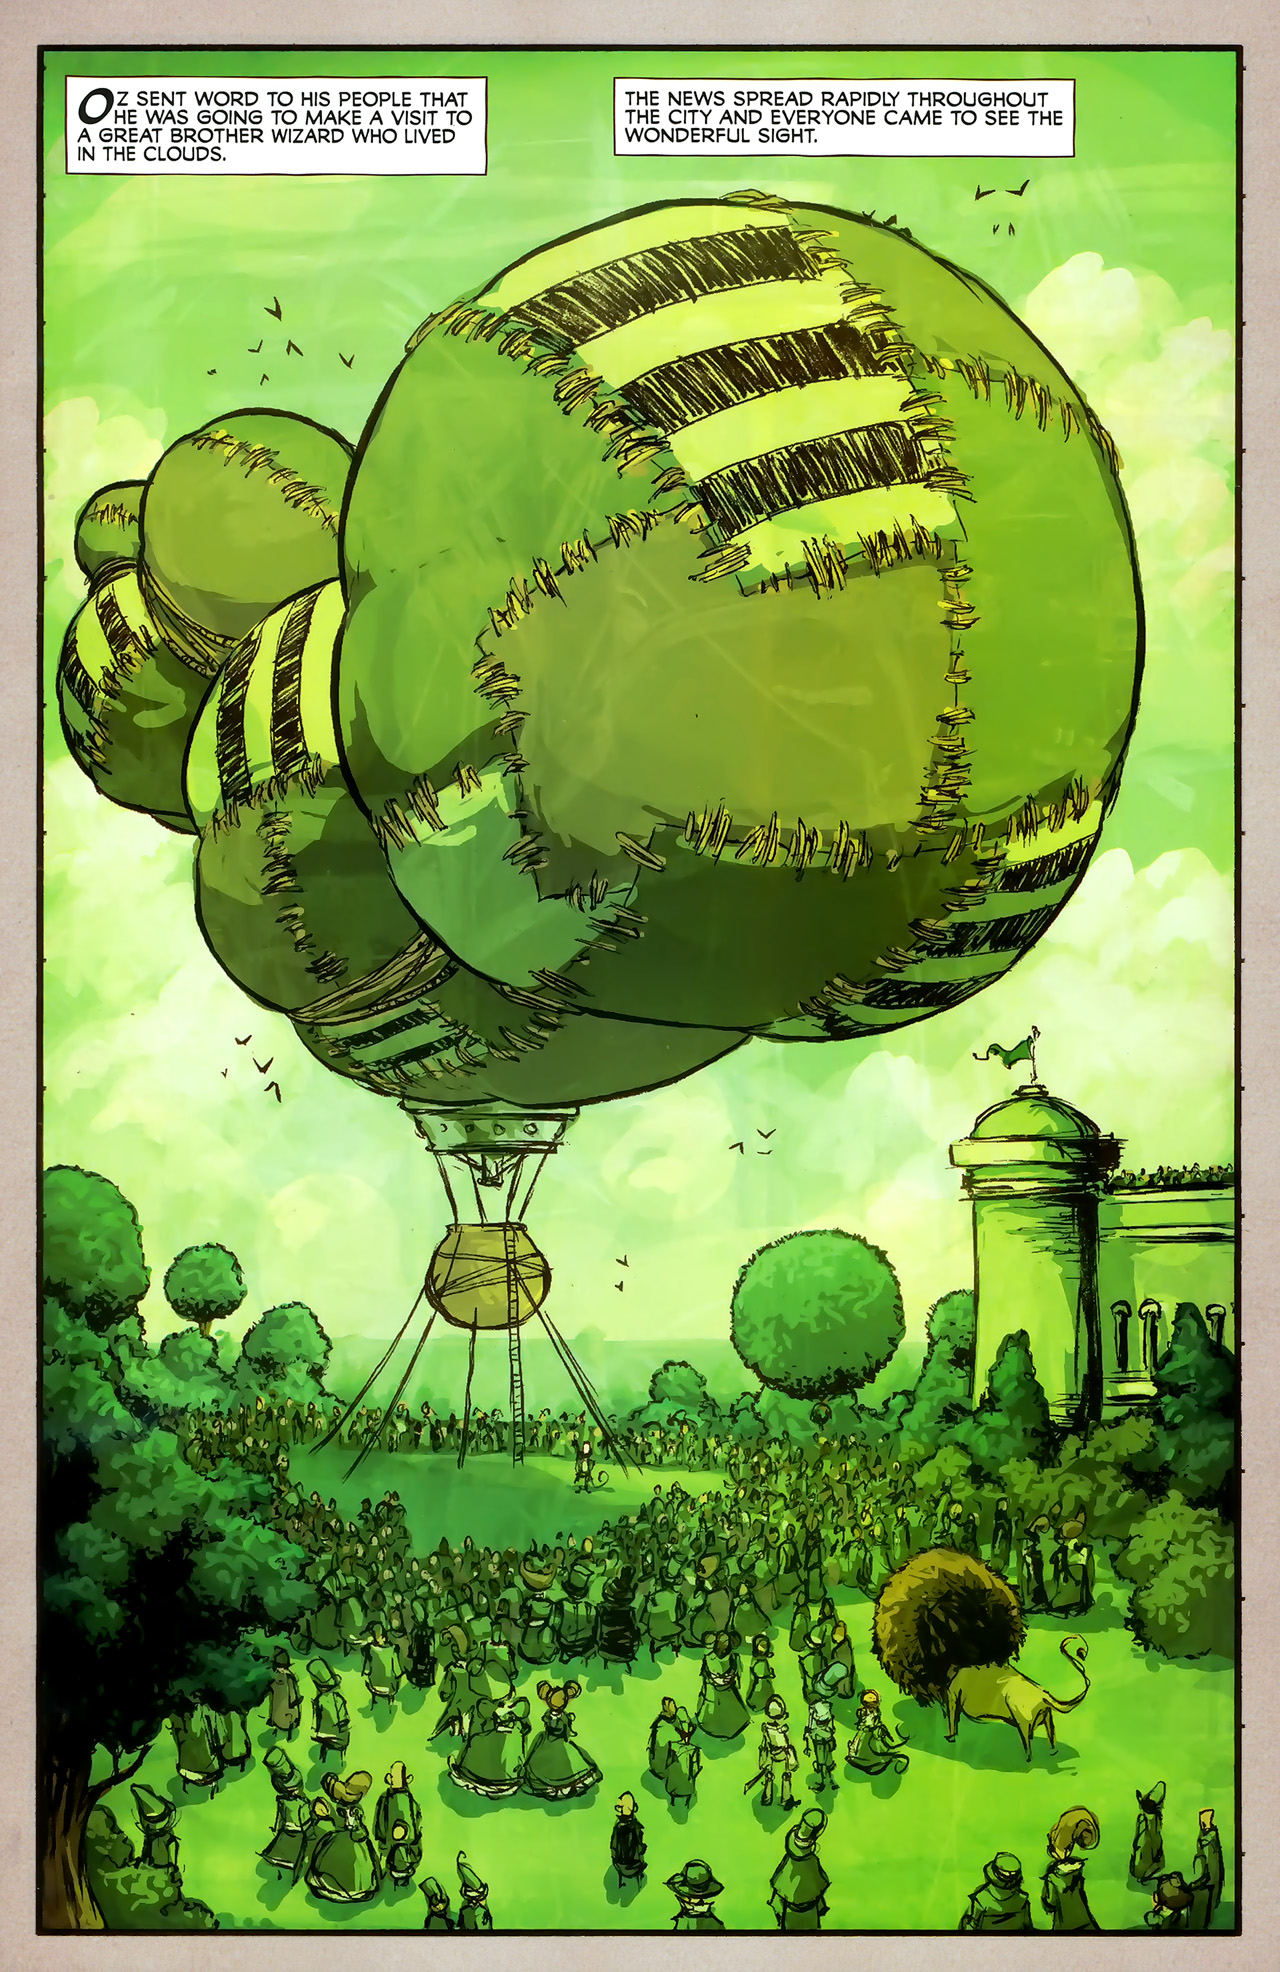 Read online The Wonderful Wizard of Oz comic -  Issue #7 - 11